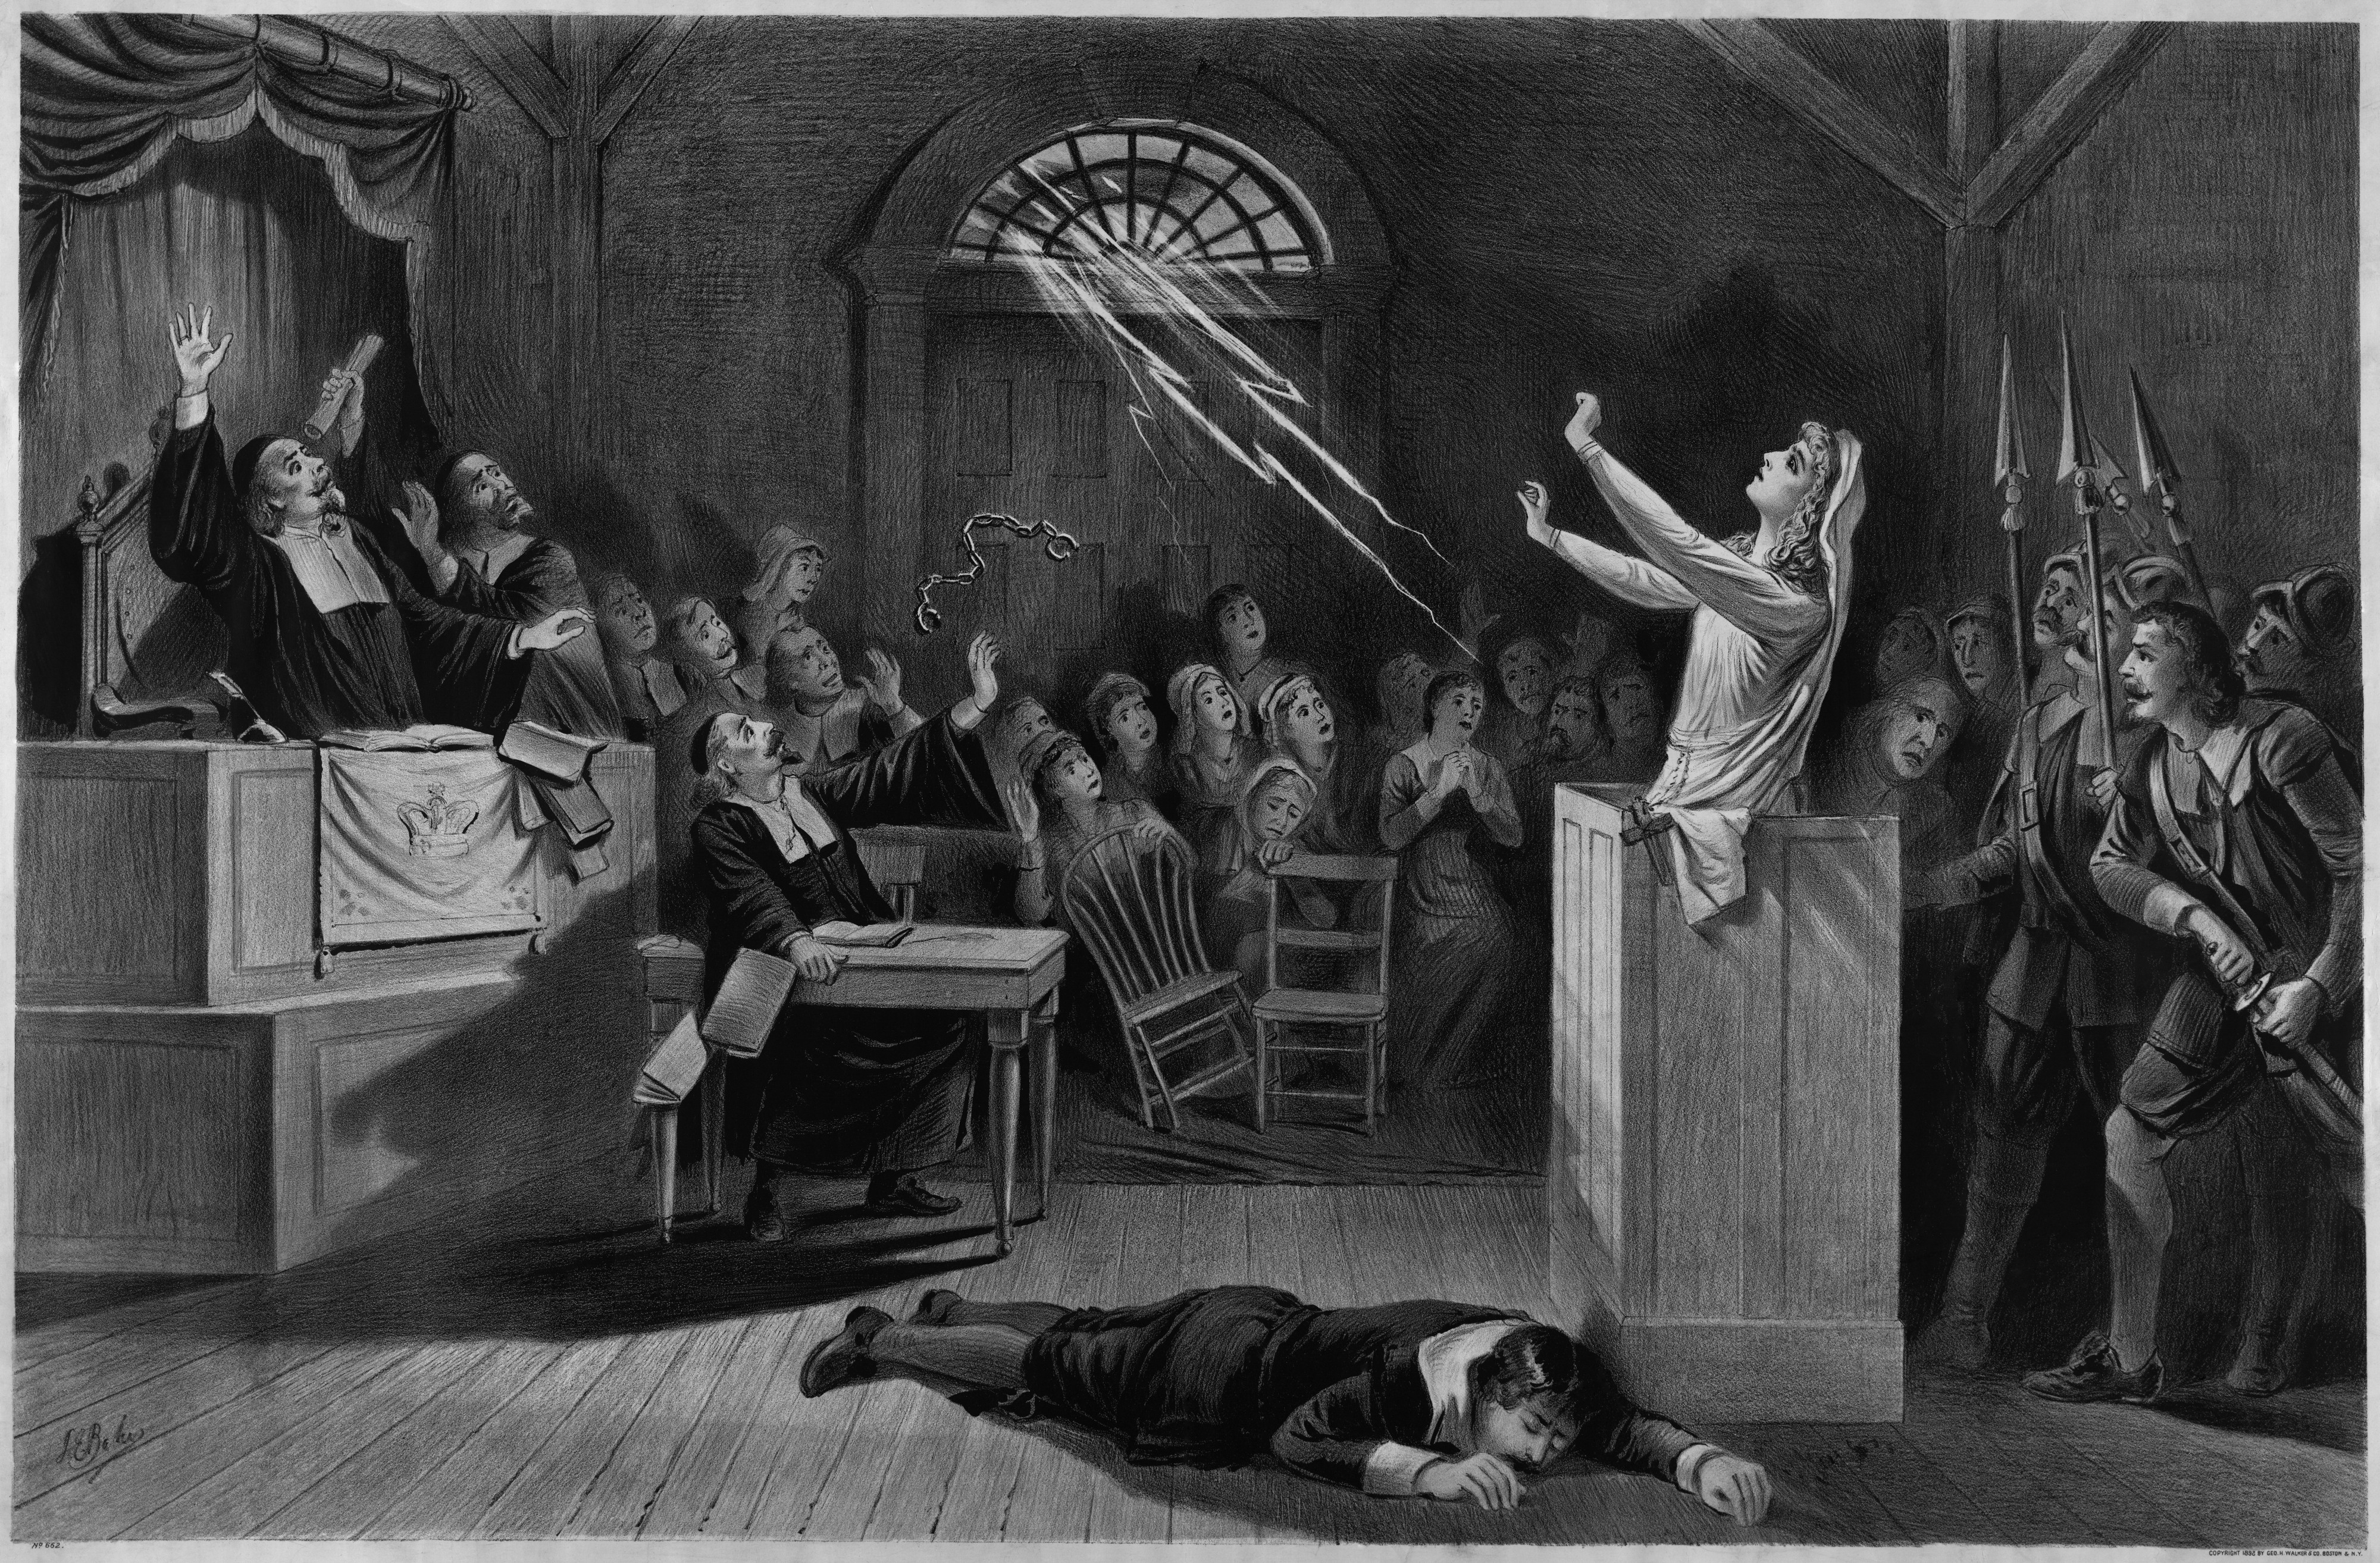 Salem witch trials: an accused witch channels powers from the sky as court members look on in fear